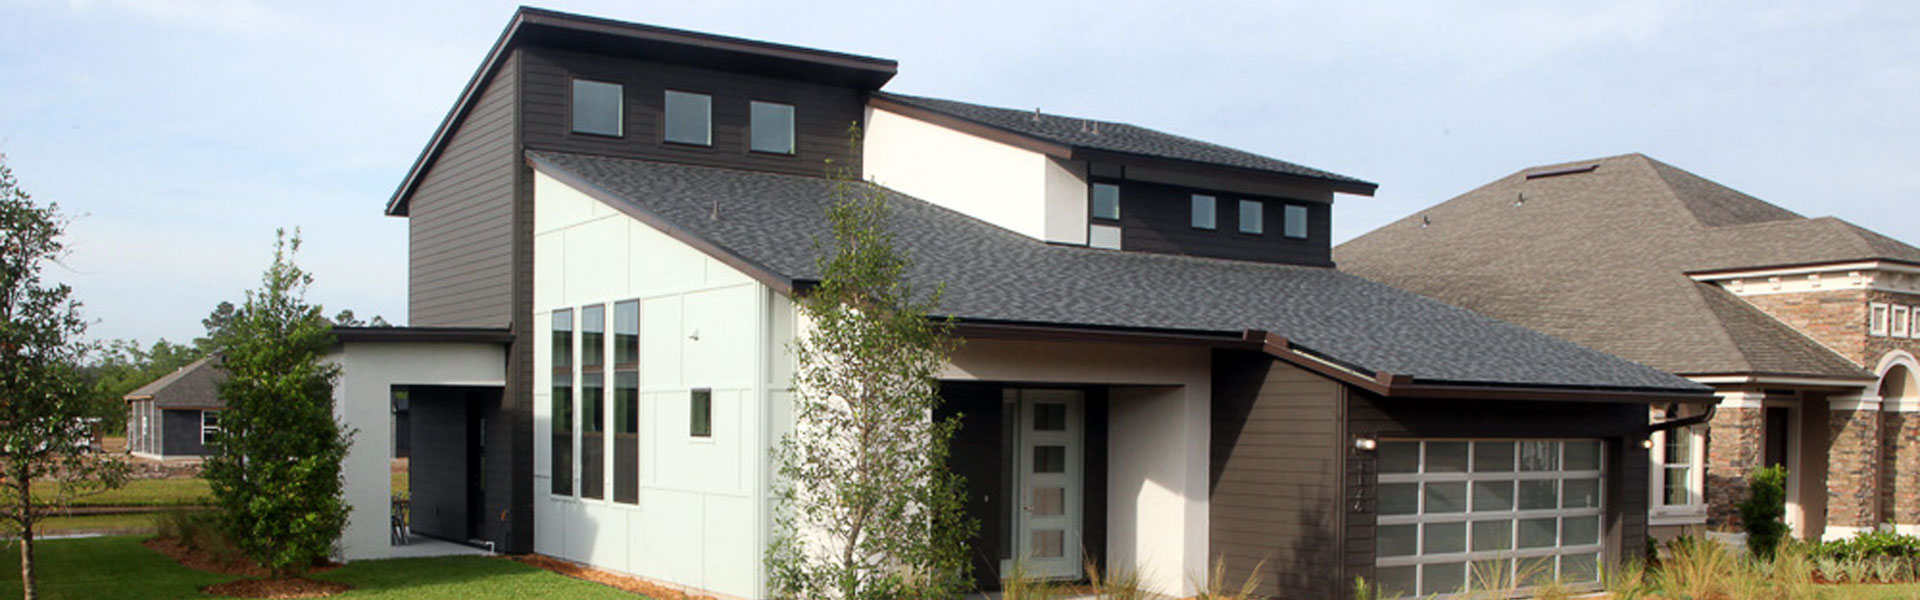 Tour the Net-Zero St. Johns model at Cedarbrook.